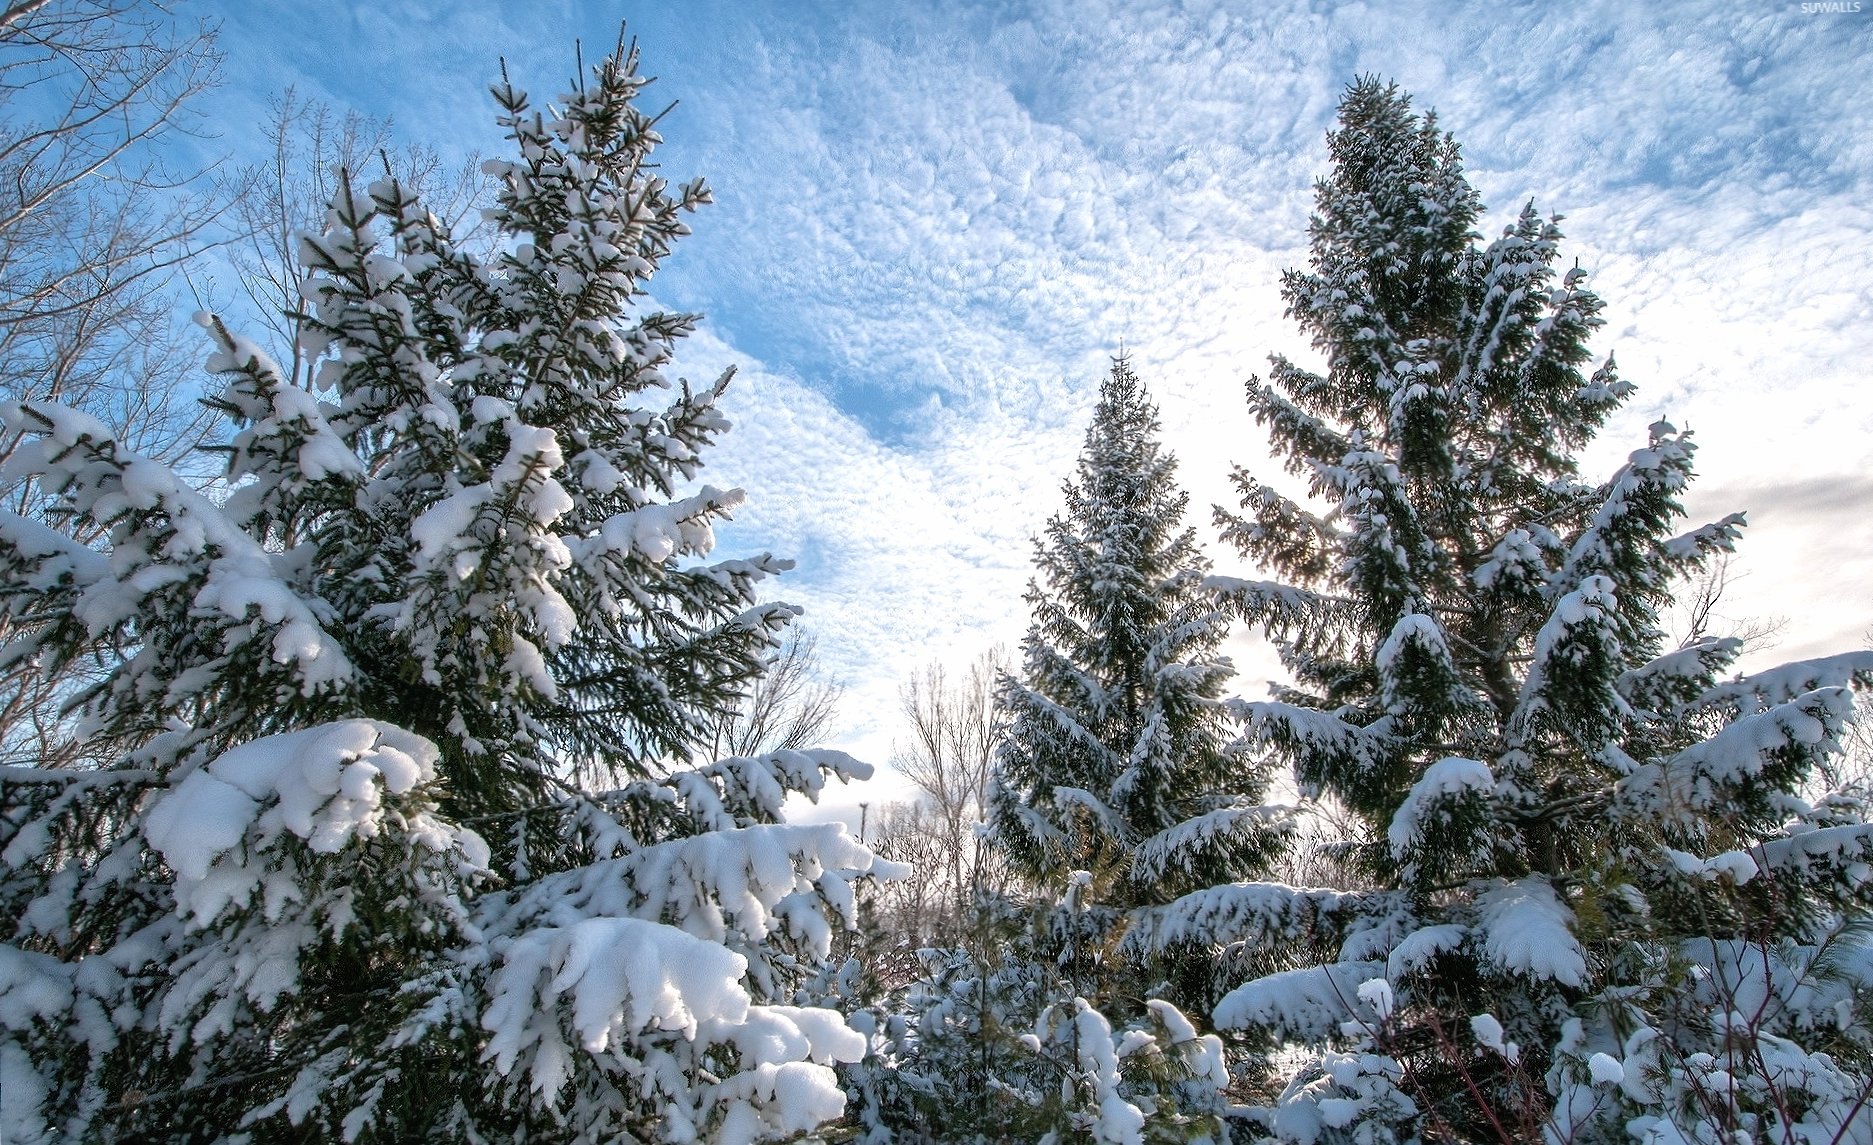 Heavy snow on the tall pine trees wallpapers HD quality